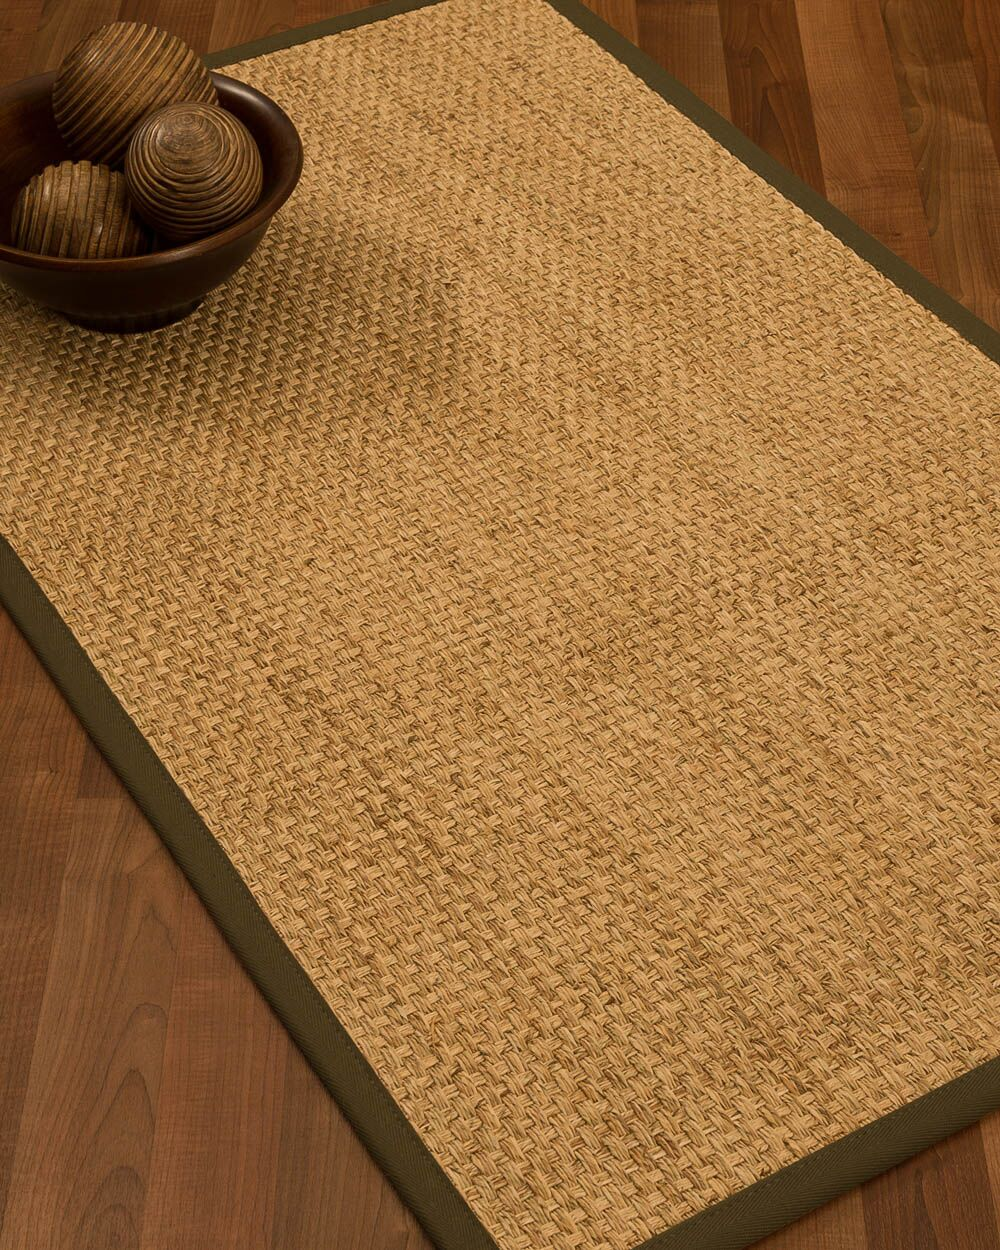 Caster Border Hand-Woven Beige/Malt Area Rug Rug Size: Rectangle 8' x 10', Rug Pad Included: Yes